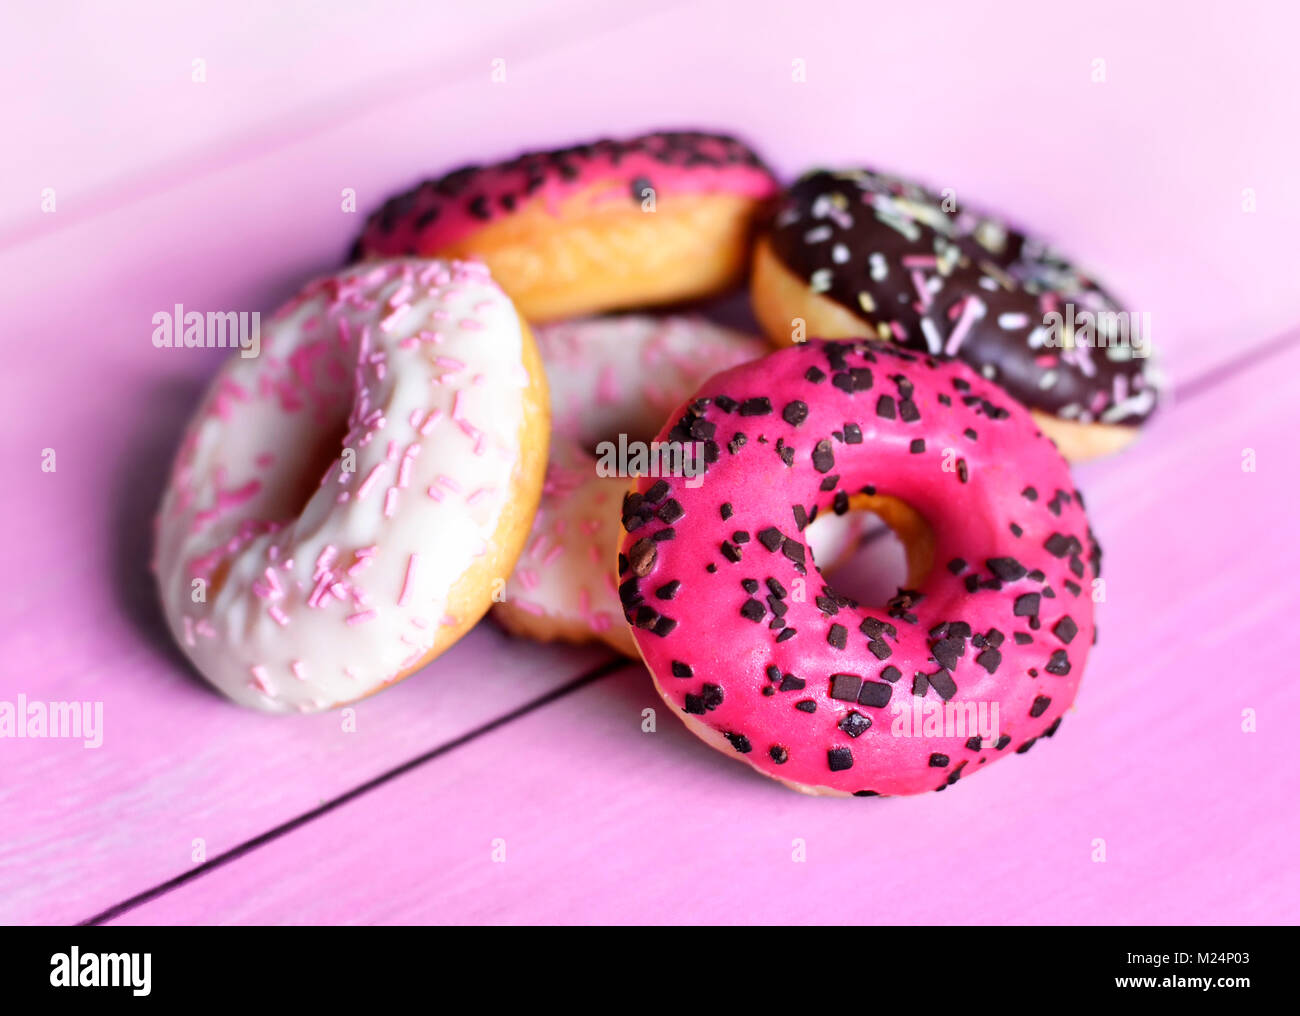 Delicious glazed donuts with sprinkles. Pink table and arrangement of chocolate donuts, various donuts, sweet food - Stock Image